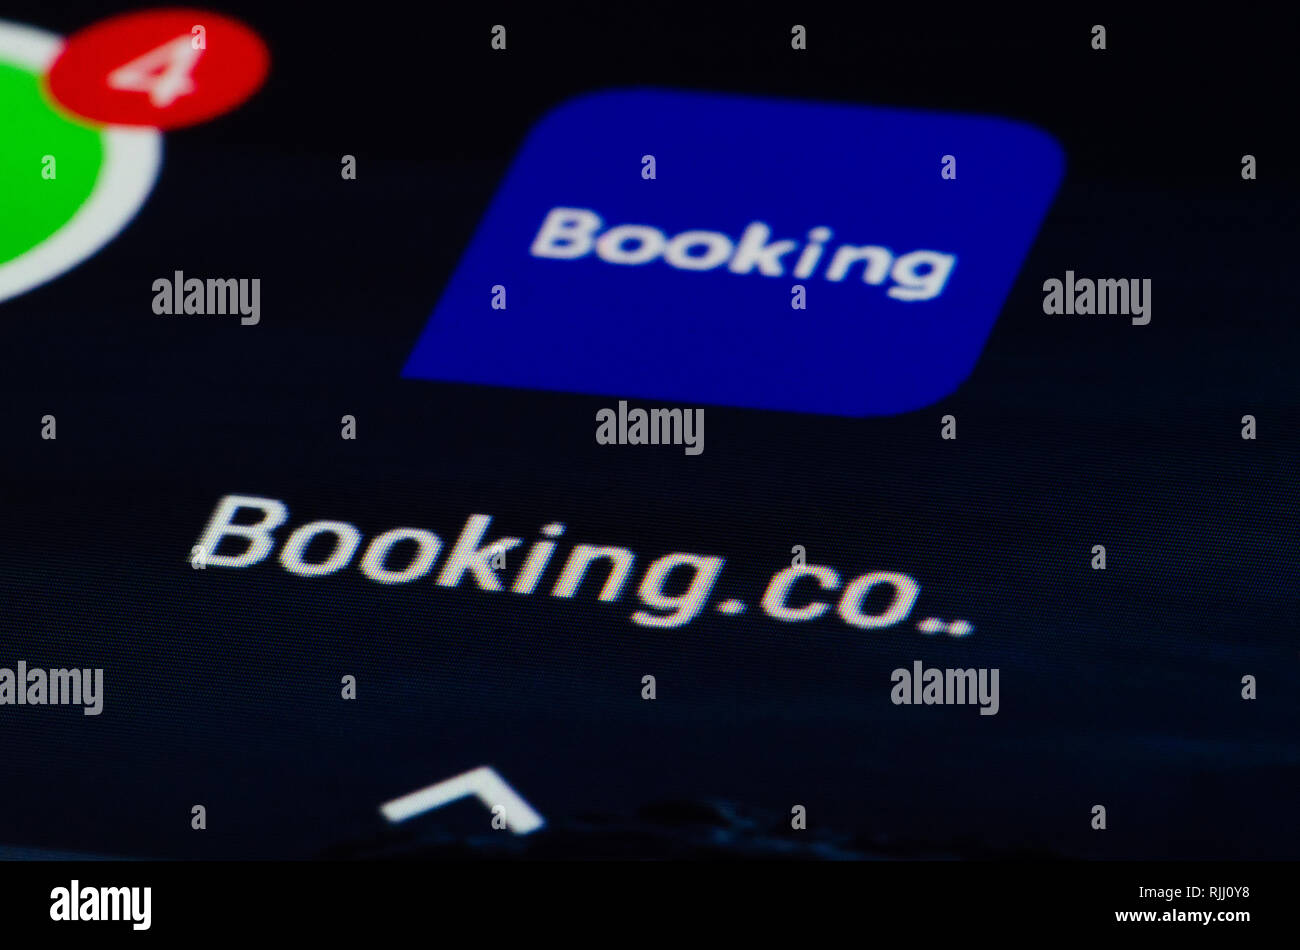 Booking.com app, travel fare aggregator website and travel metasearch engine for lodging reservations and accommodations, hotel and home stay Stock Photo